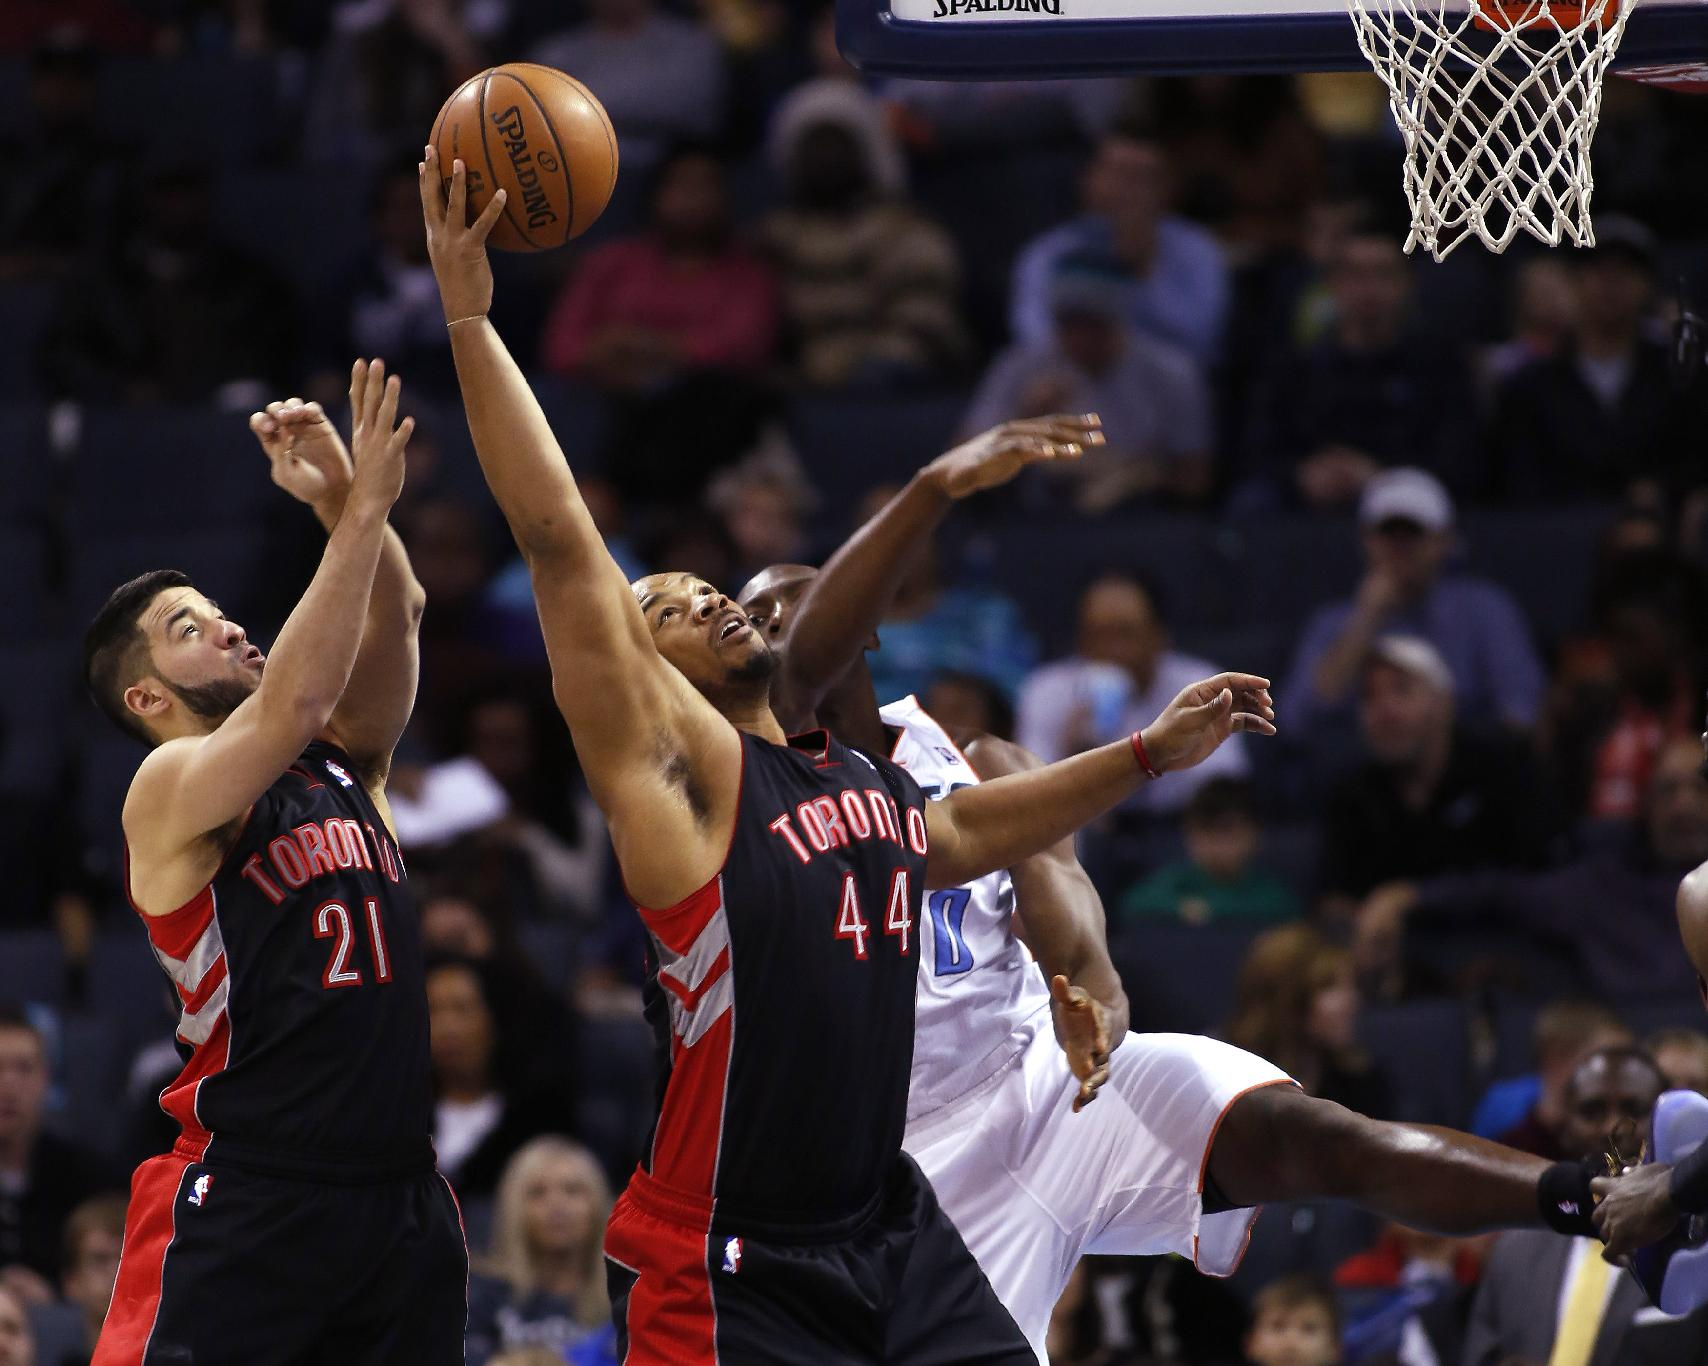 Toronto Raptors guard Greivis Vasquez, of Venezuela (21). and forward Chuck Hayes (44) battle Charlotte Bobcats center Bismack Biyombo, of the Democratic Republic of Congo, for a rebound in the first half of an NBA basketball game Monday, Jan. 20, 2014 in Charlotte, N.C